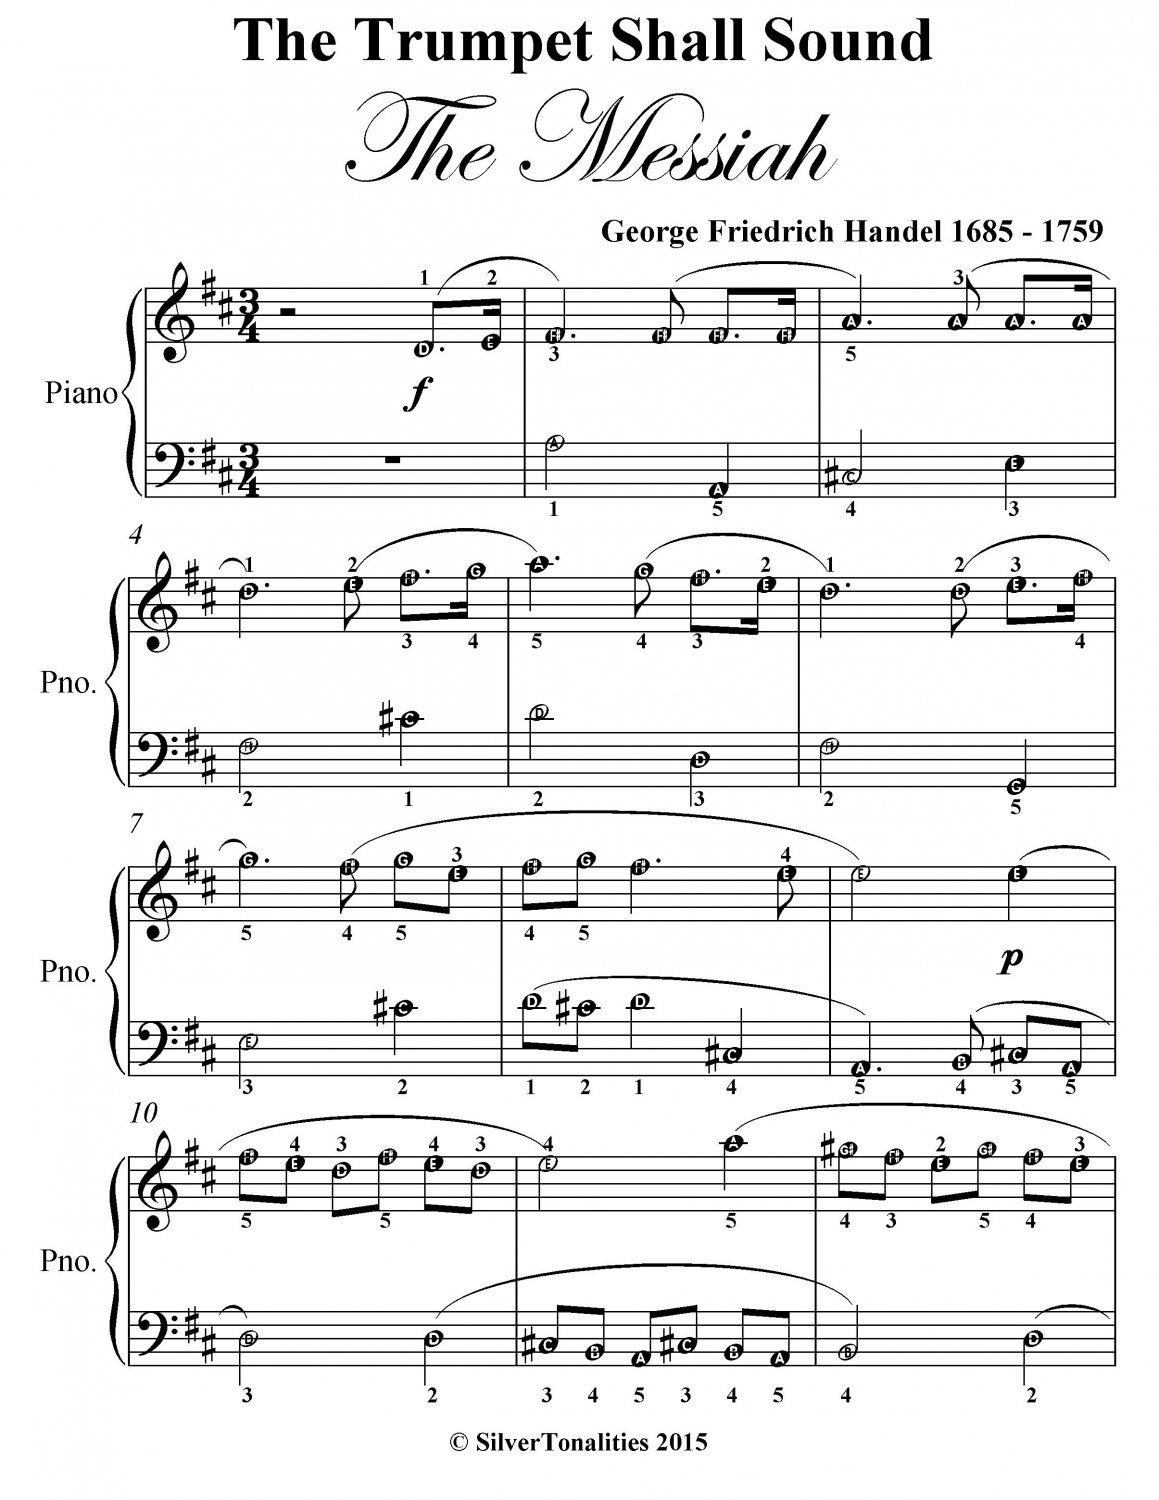 The Trumpet Shall Sound Easy Piano Sheet Music Pdf